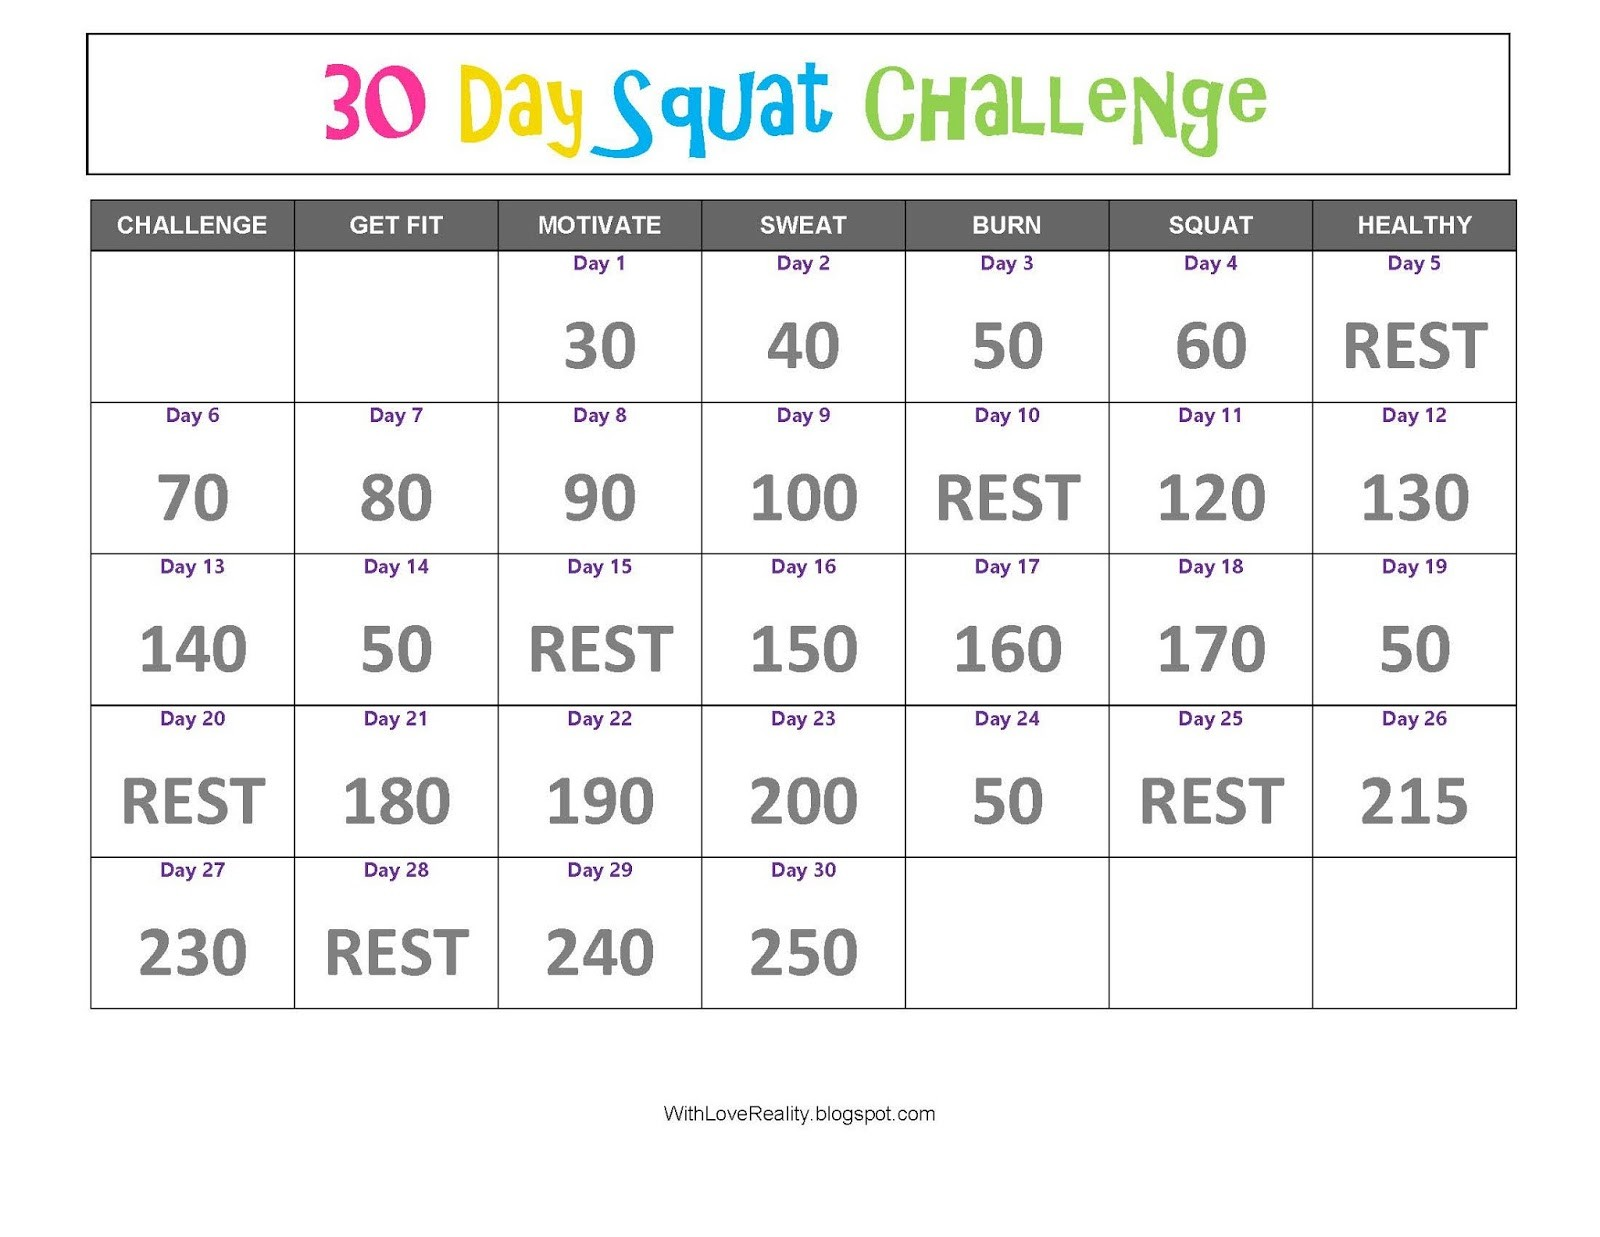 With Love Reality 30 Day Squat Challenge